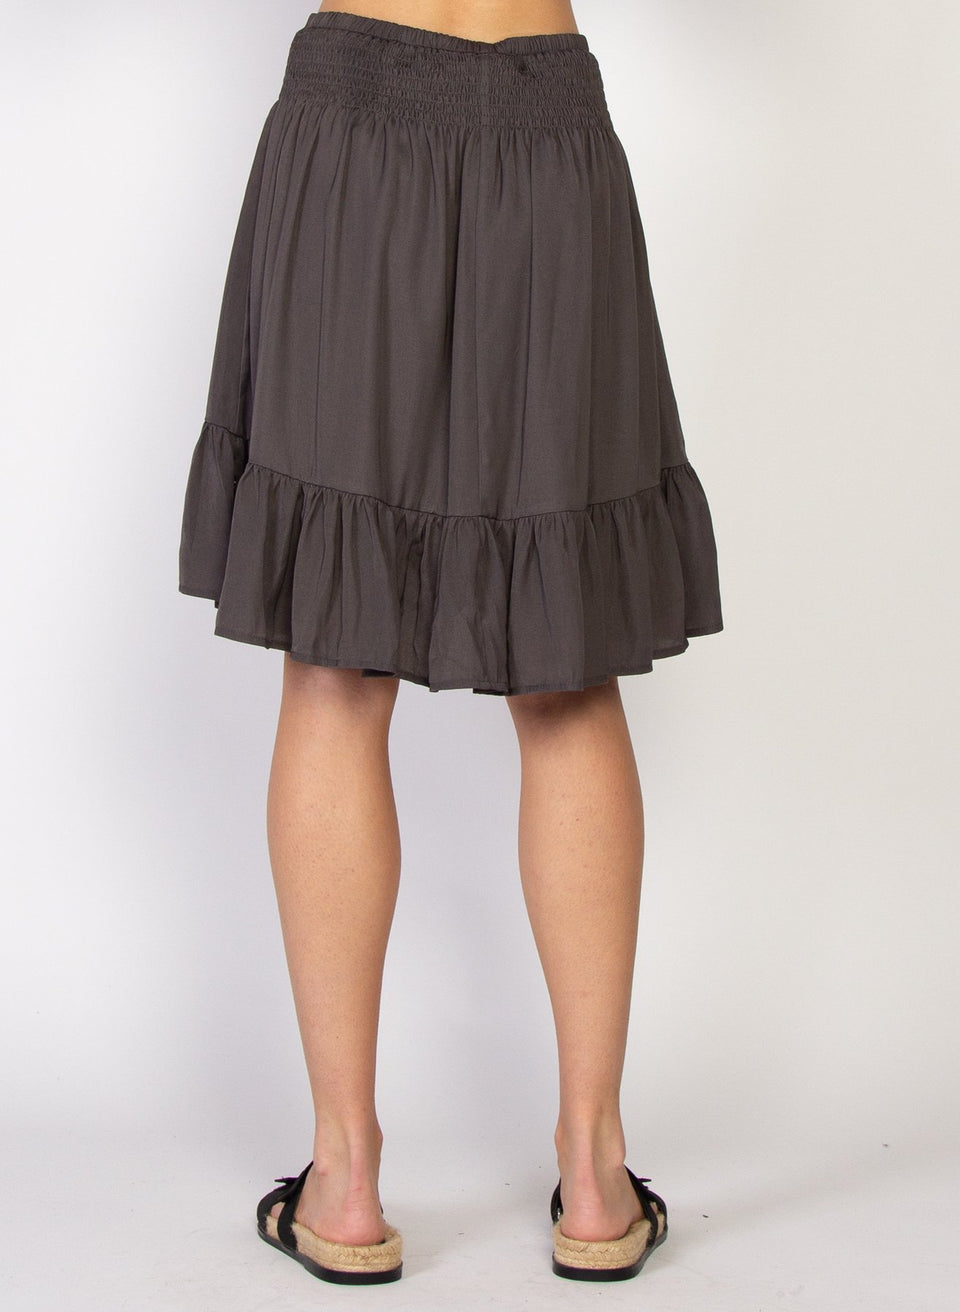 Federation Jenna Skirt - Charcoal